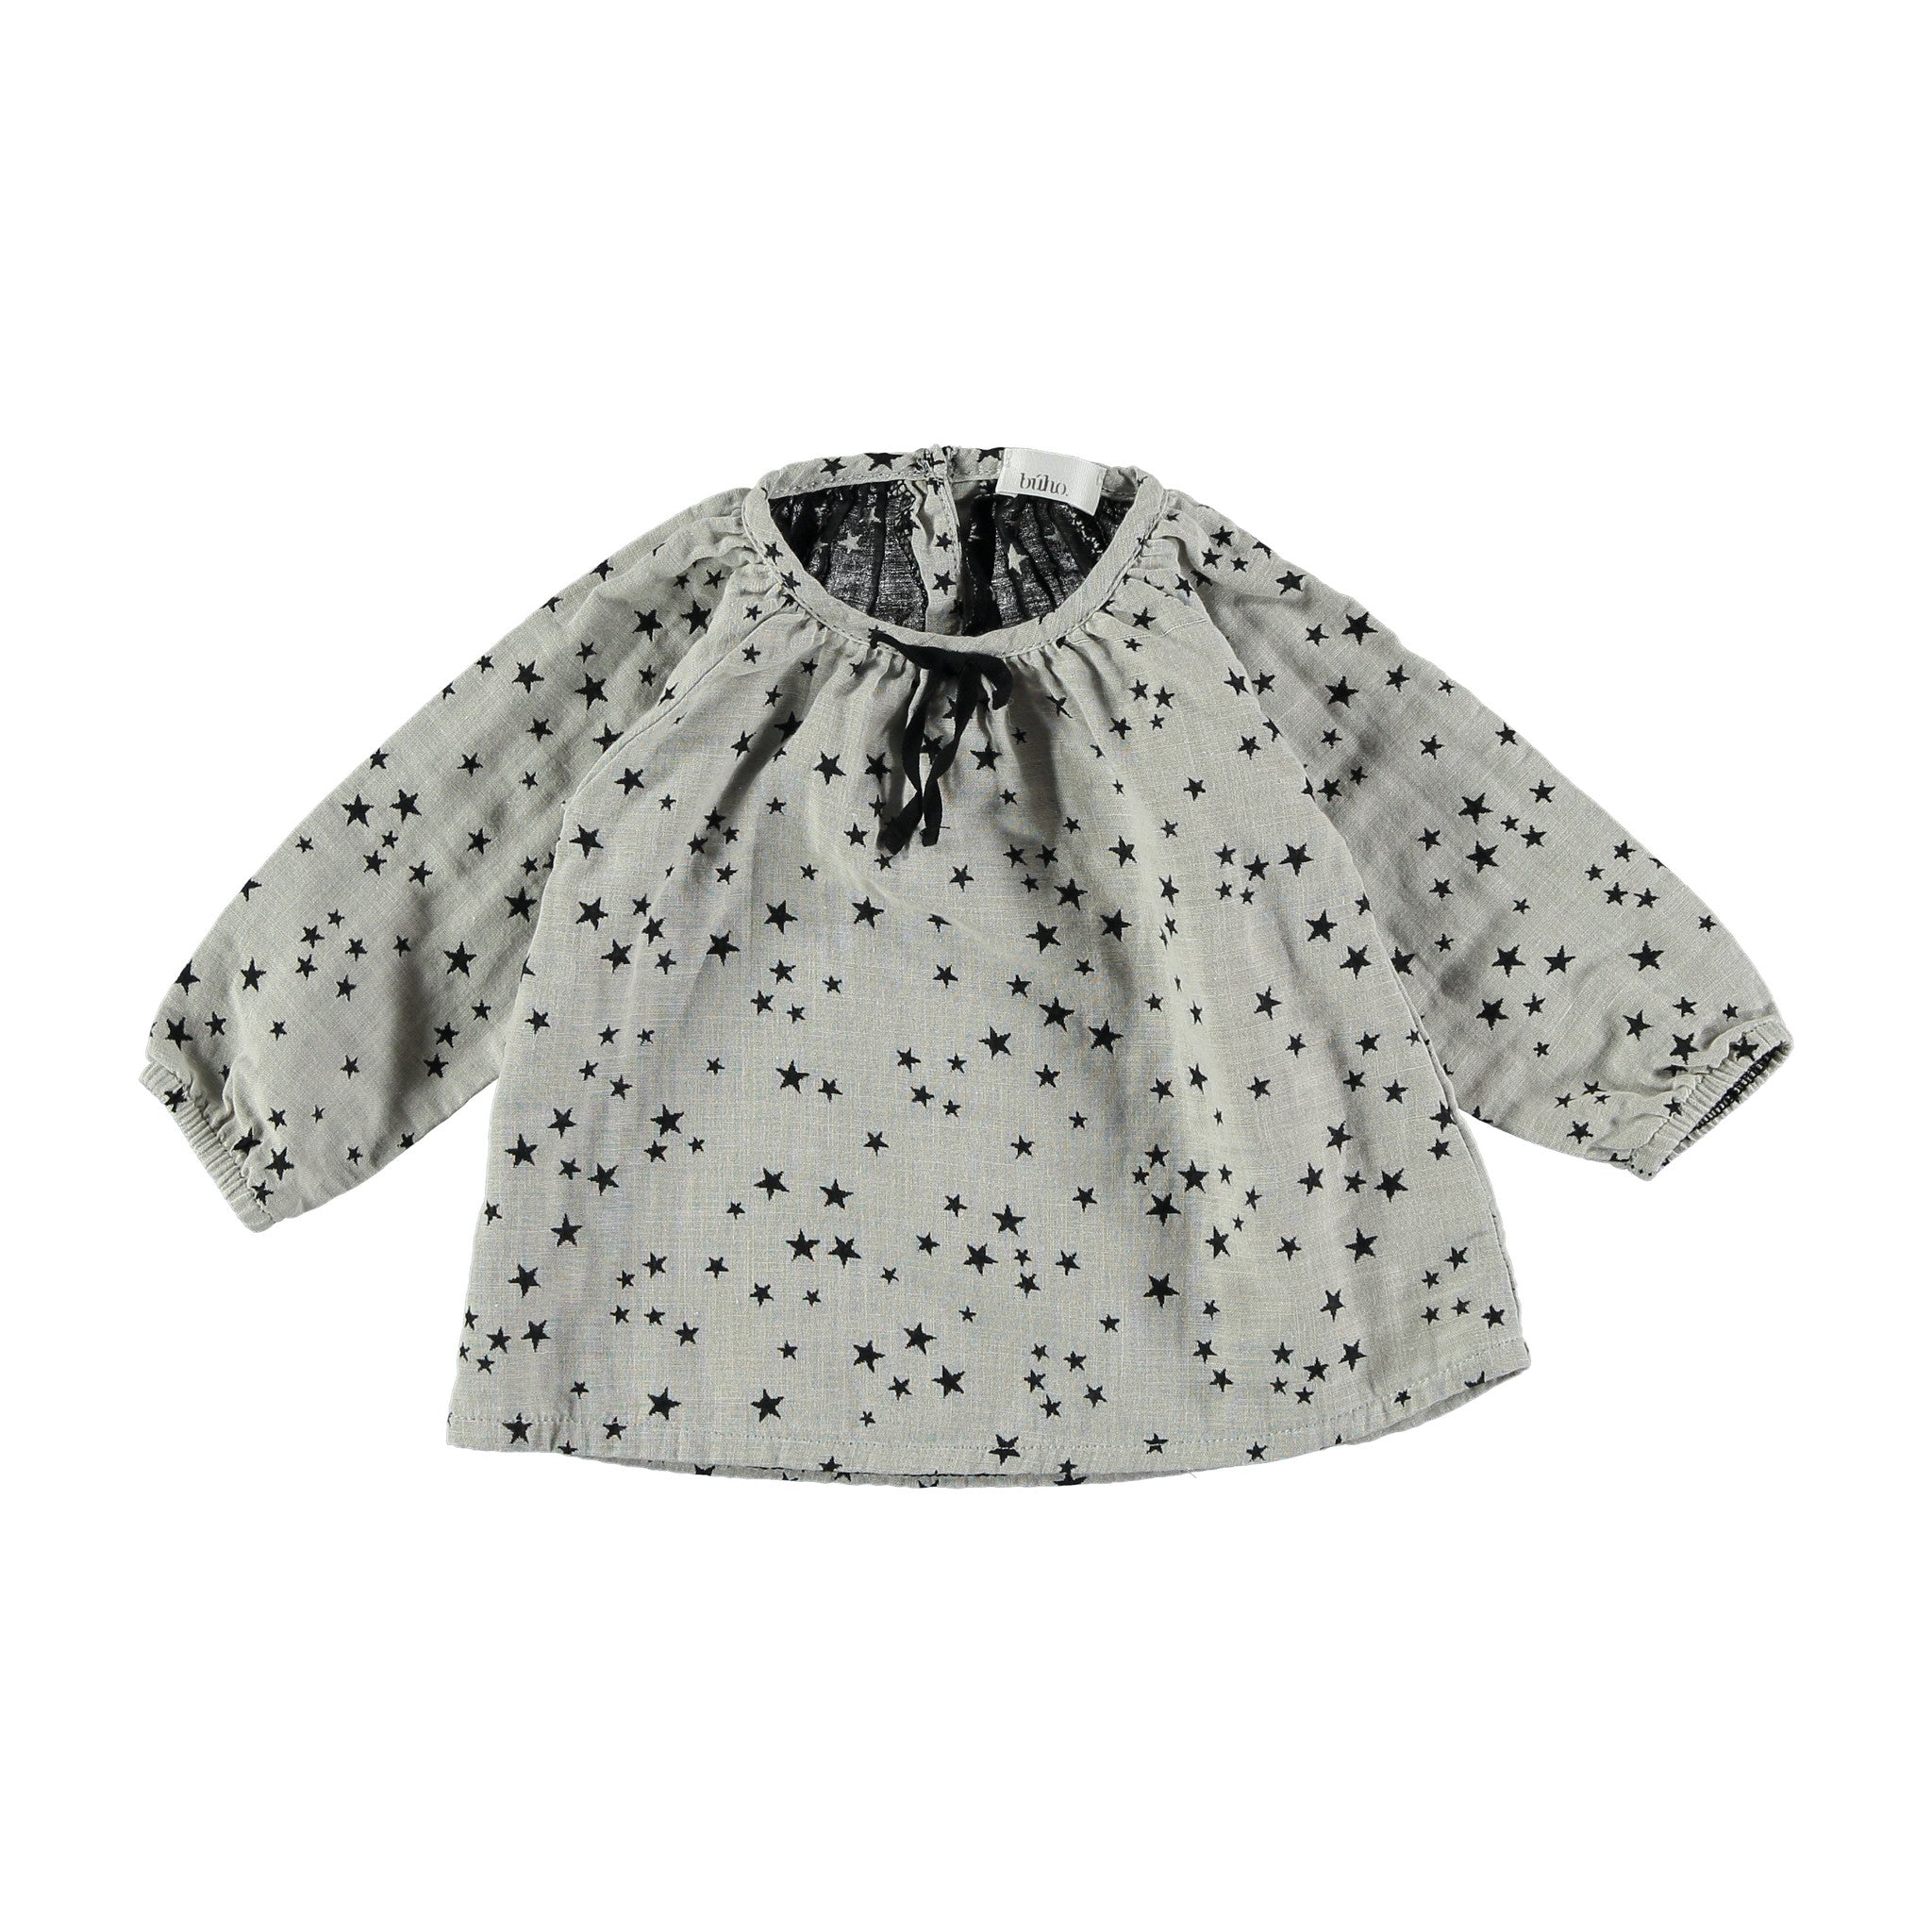 Stars baby blouse by Buho at Bonjour Baby Baskets